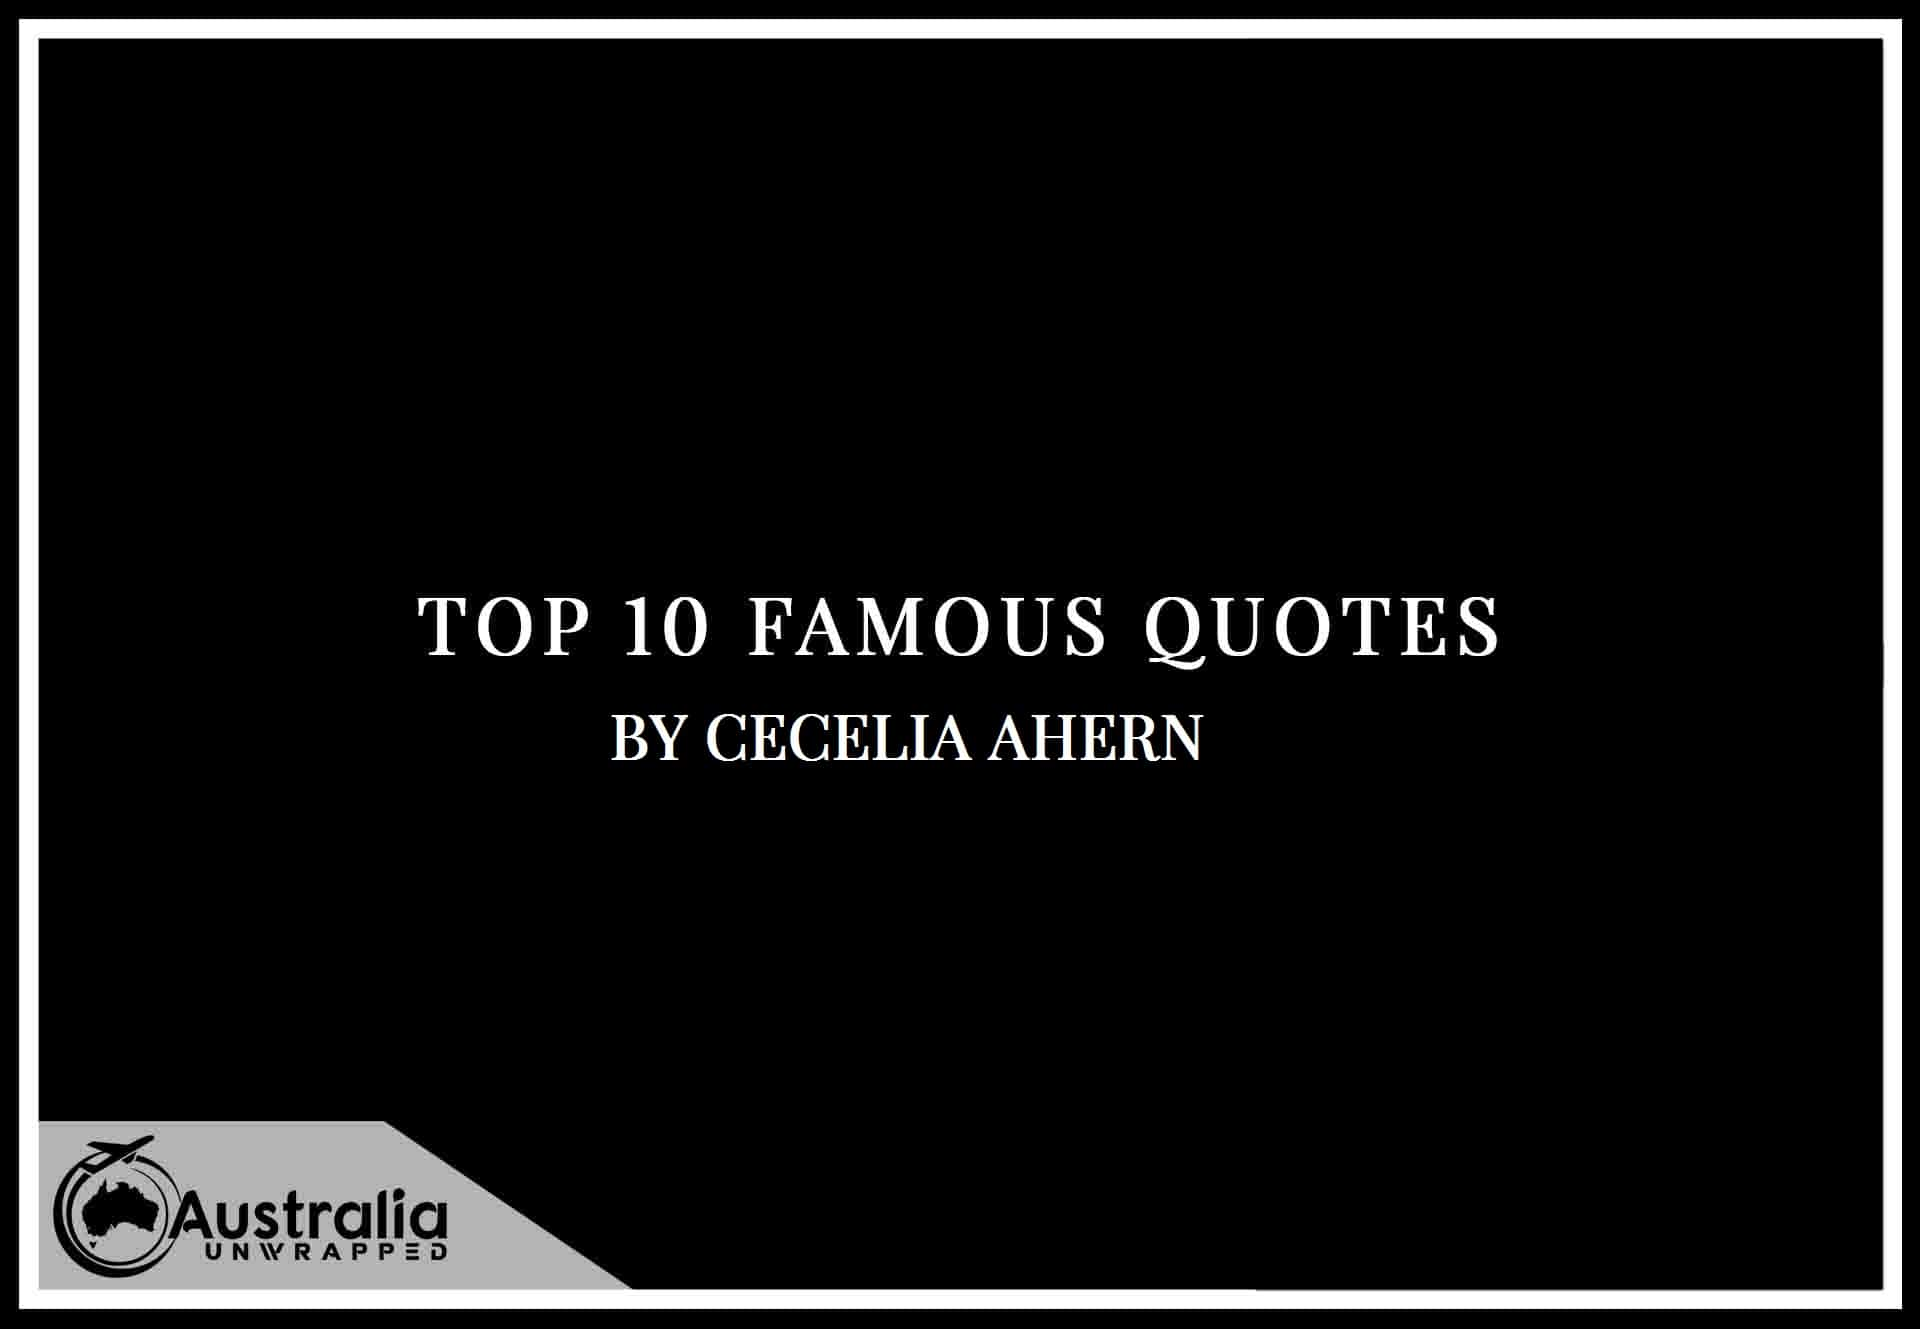 Cecilia Ahern's Top 10 Popular and Famous Quotes